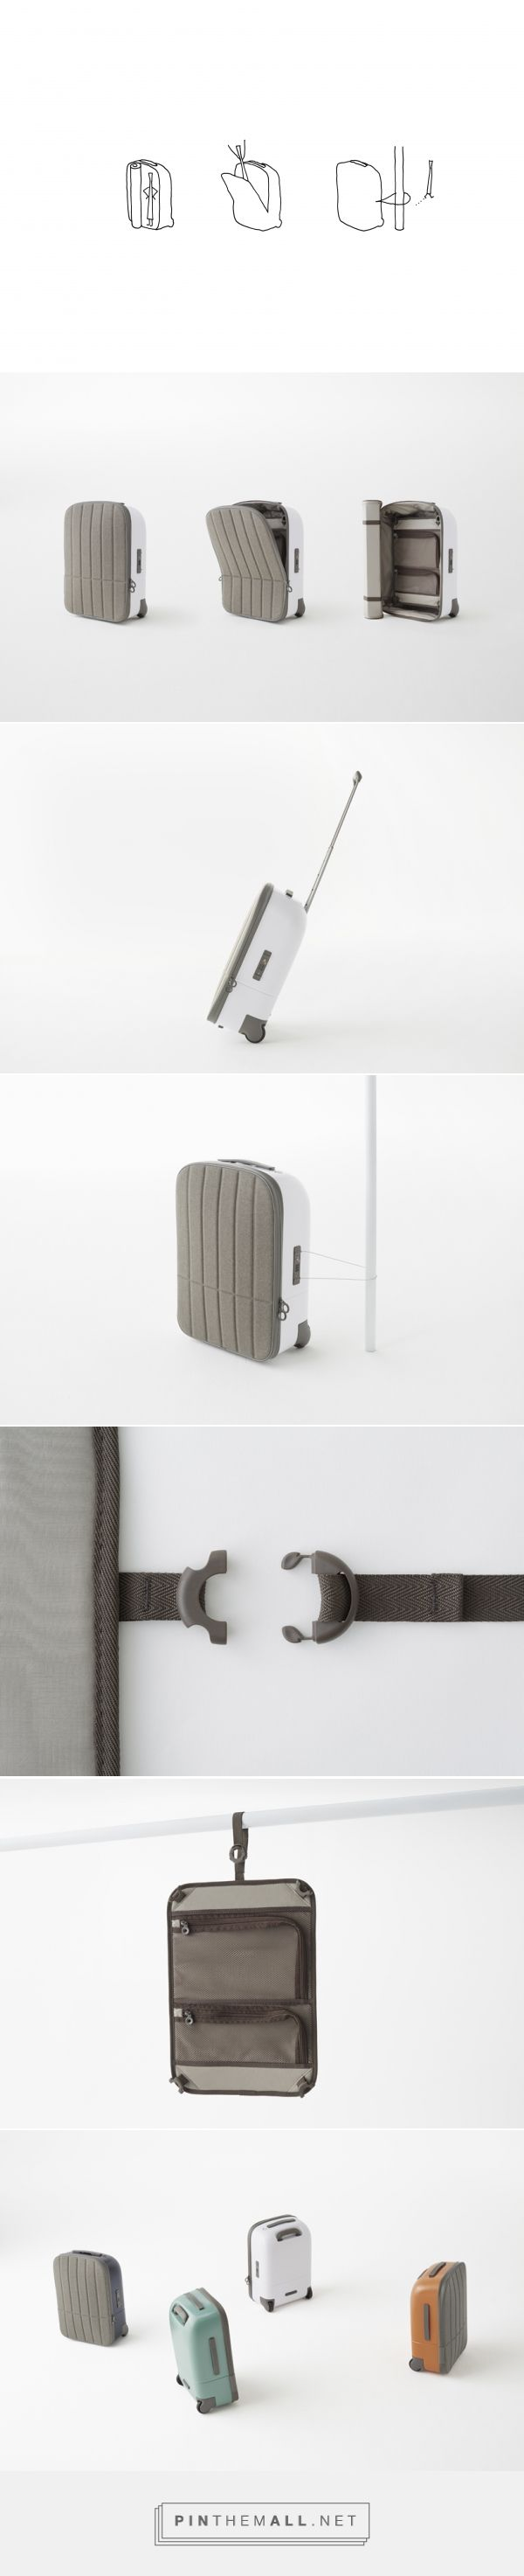 2 kücheninsel-ideen  best product images on pinterest  furniture ideas projects and diy